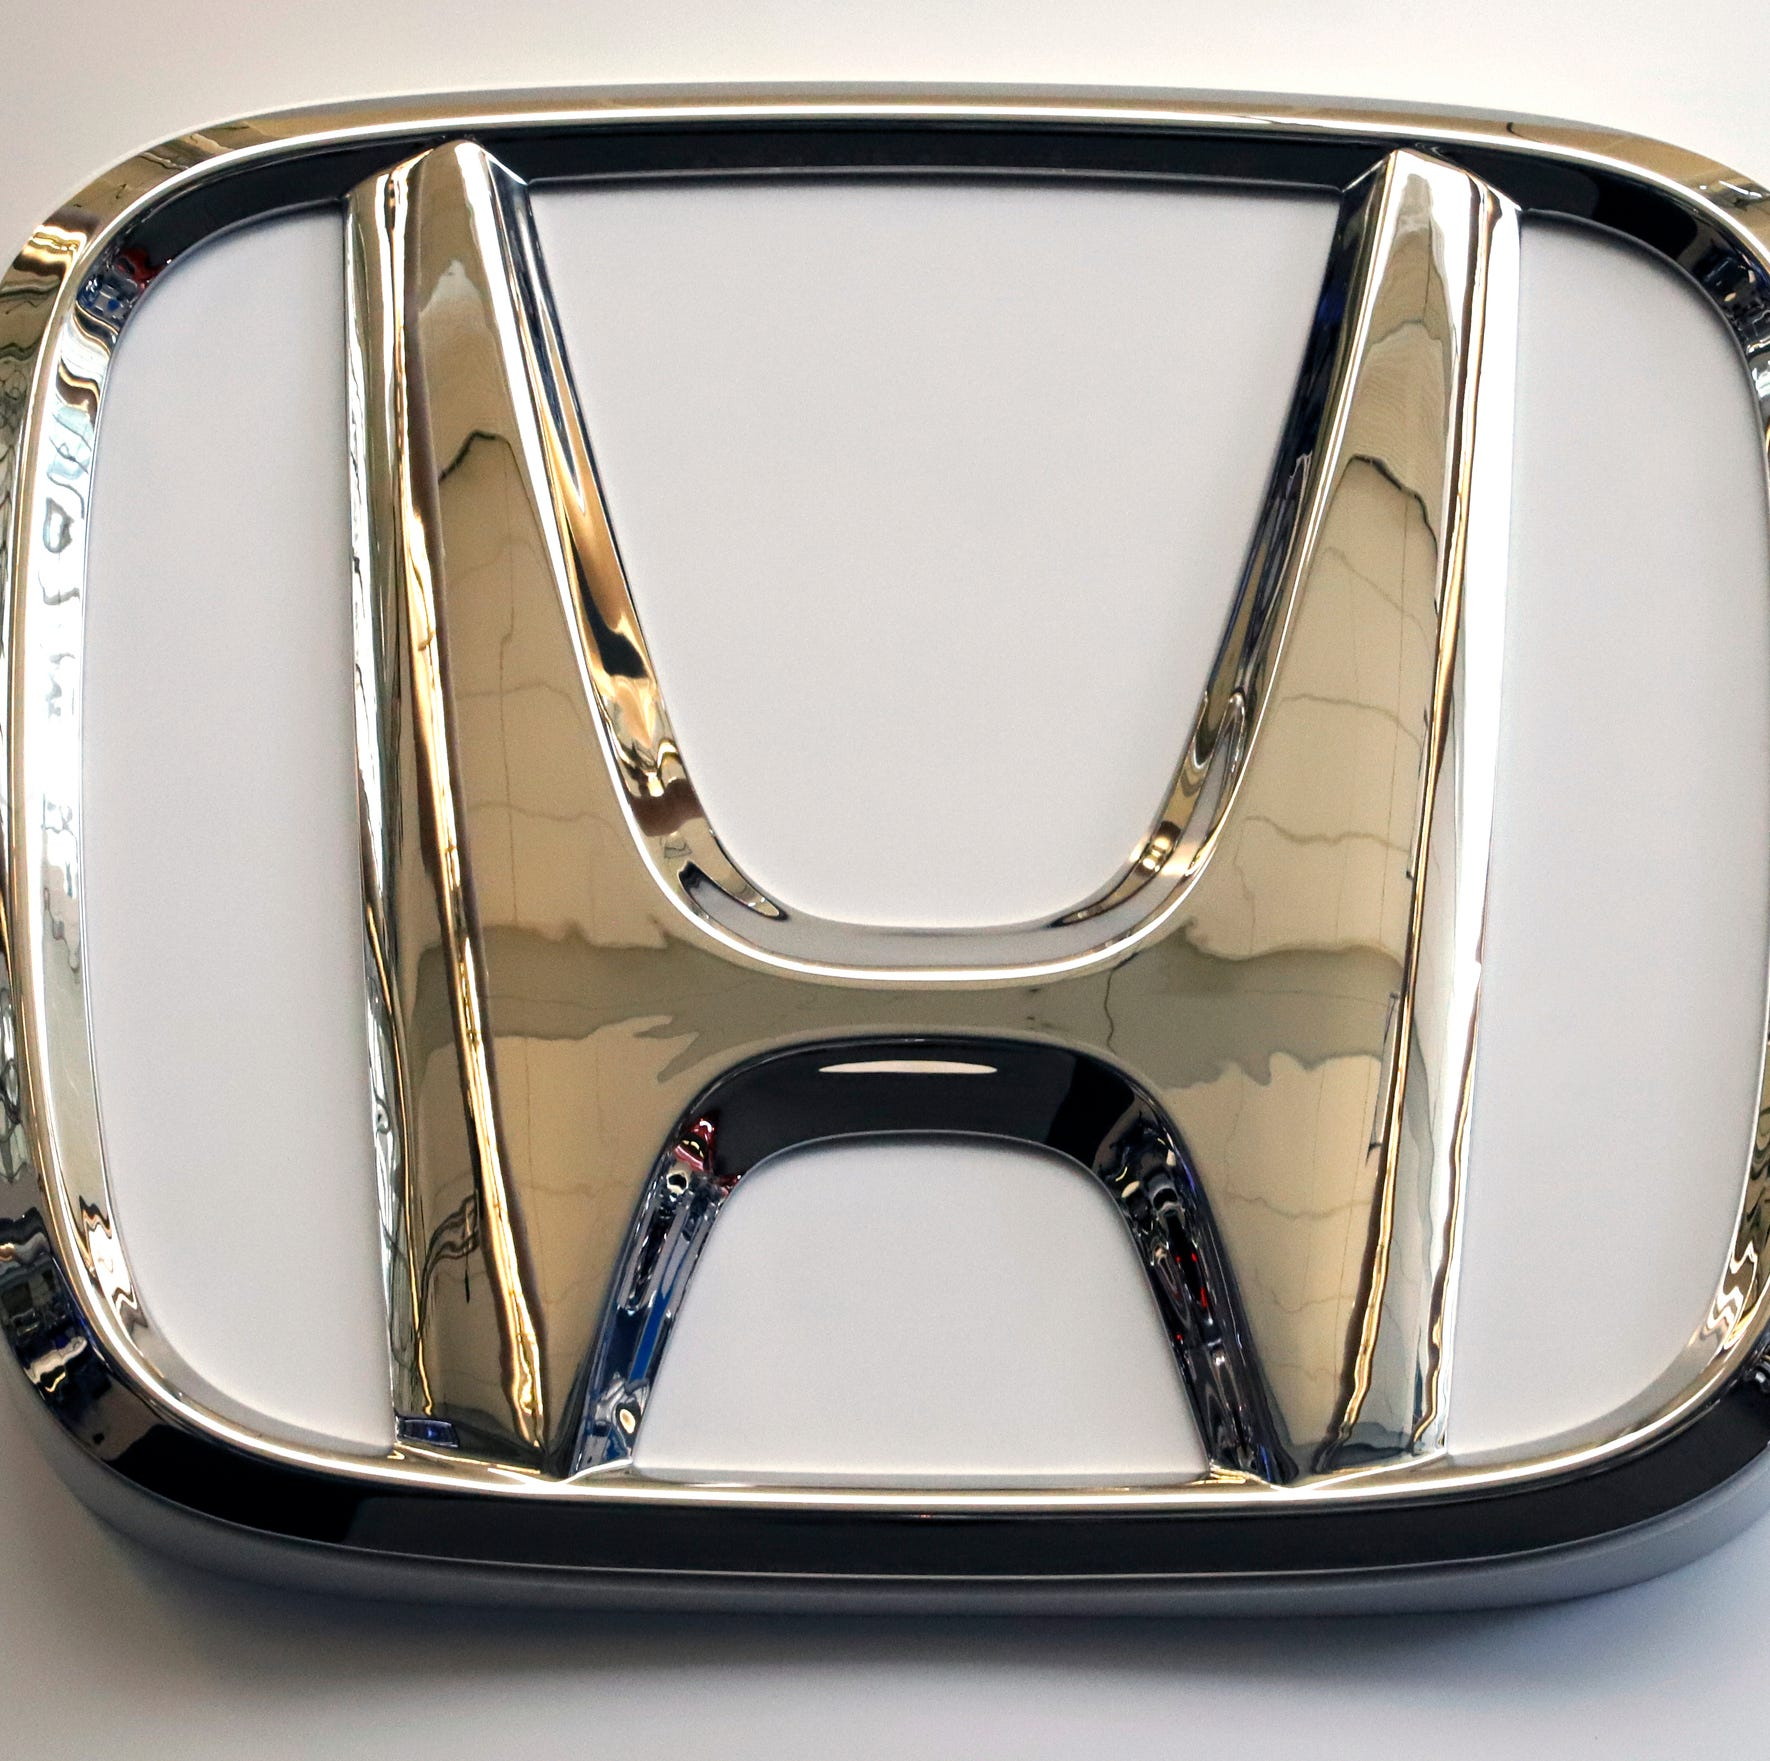 Honda recalls about a million of these older model vehicles due to dangerous airbags